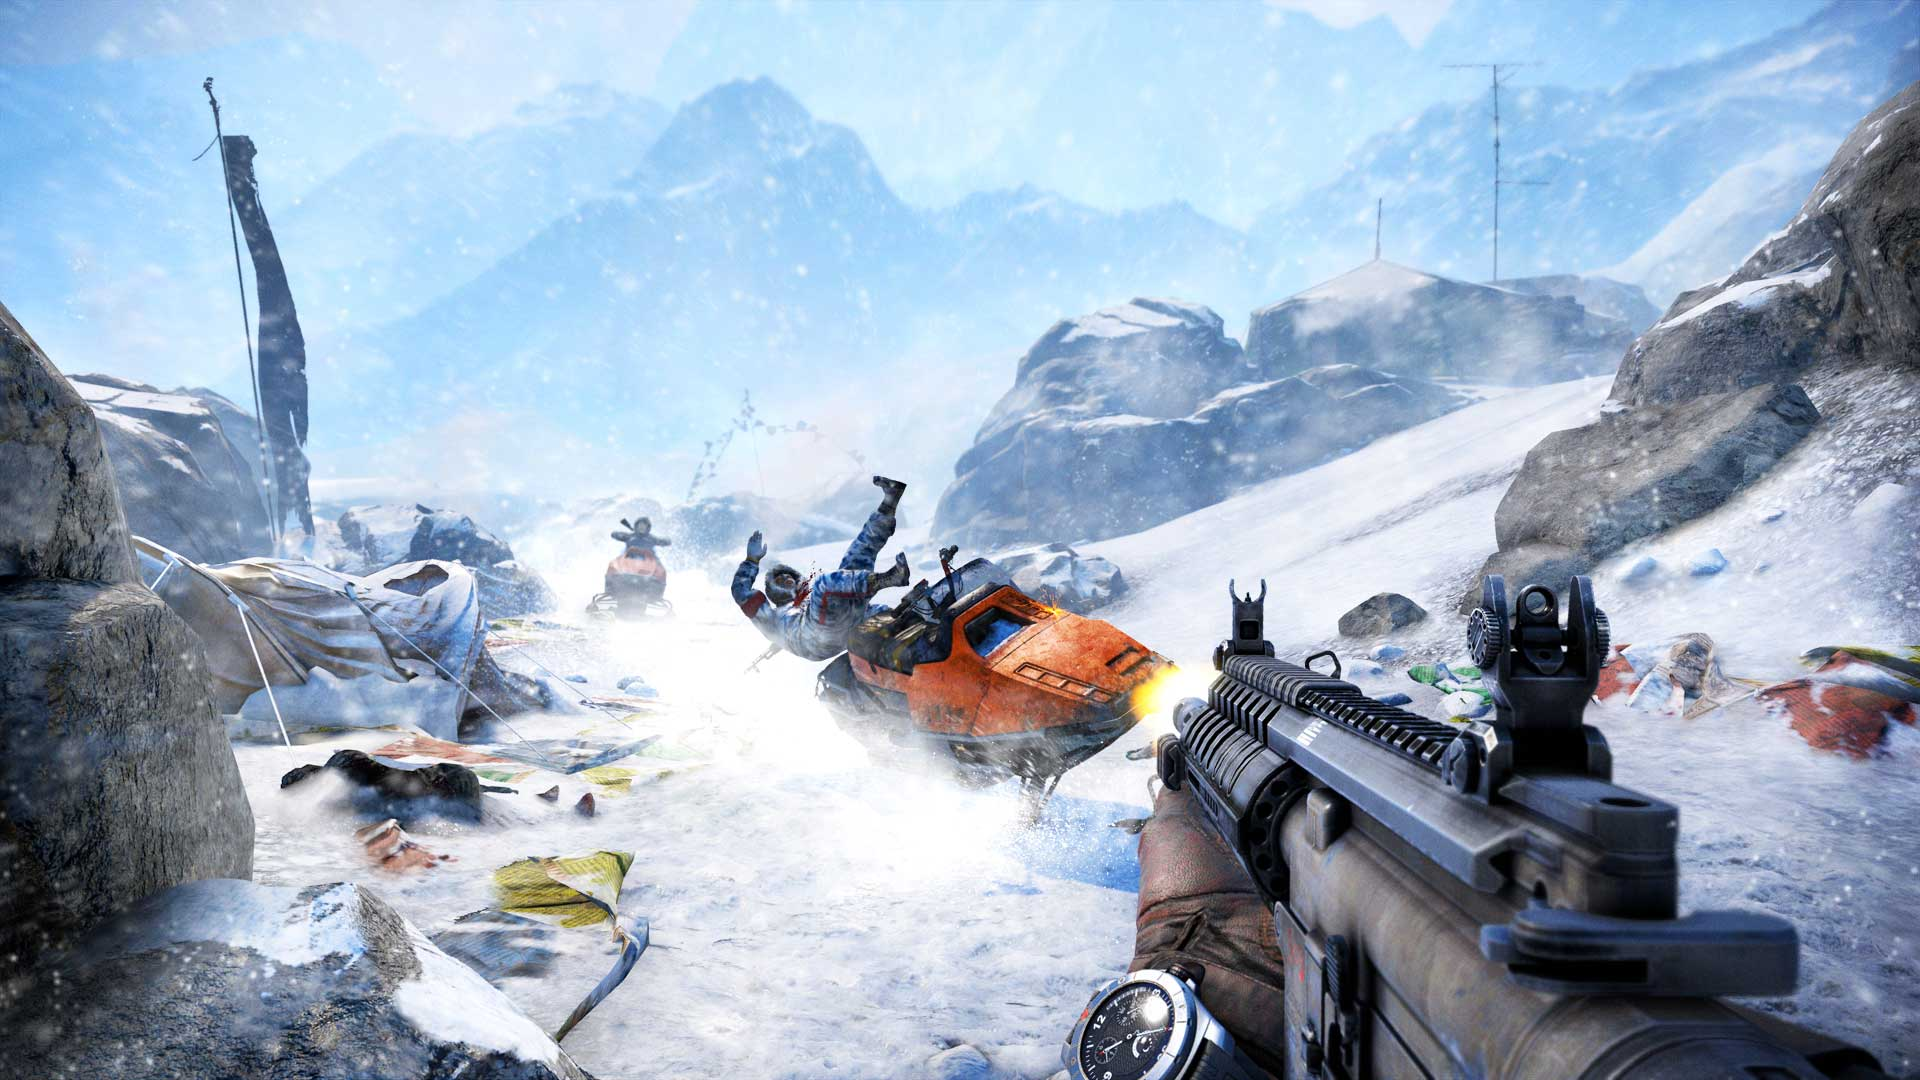 far cry 4 has a complex world filled with random encounters